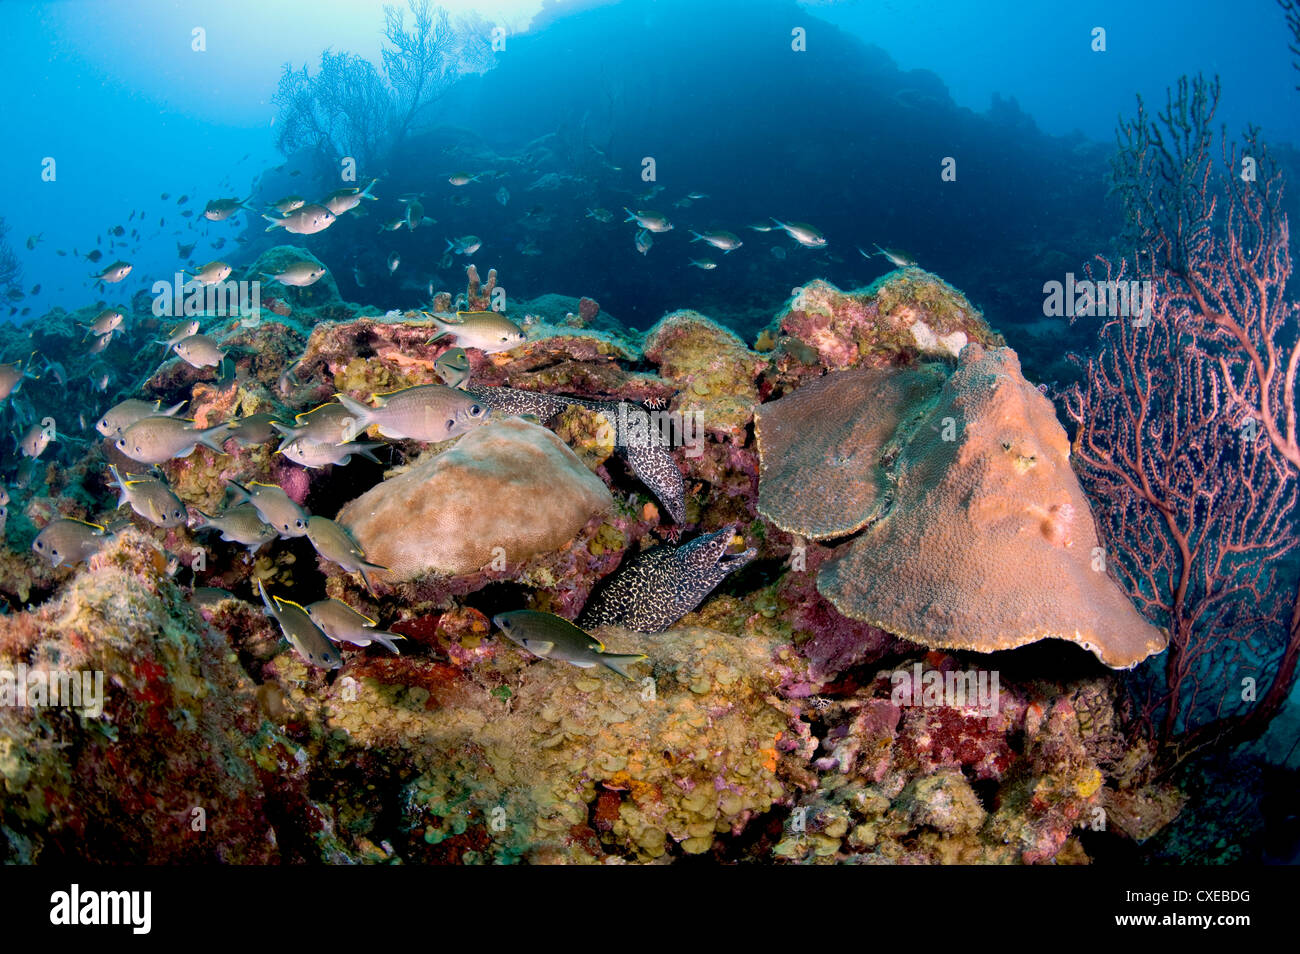 Two spotted moral eels (Gymnothorax moringa), St. Lucia, West Indies, Caribbean, Central America - Stock Image